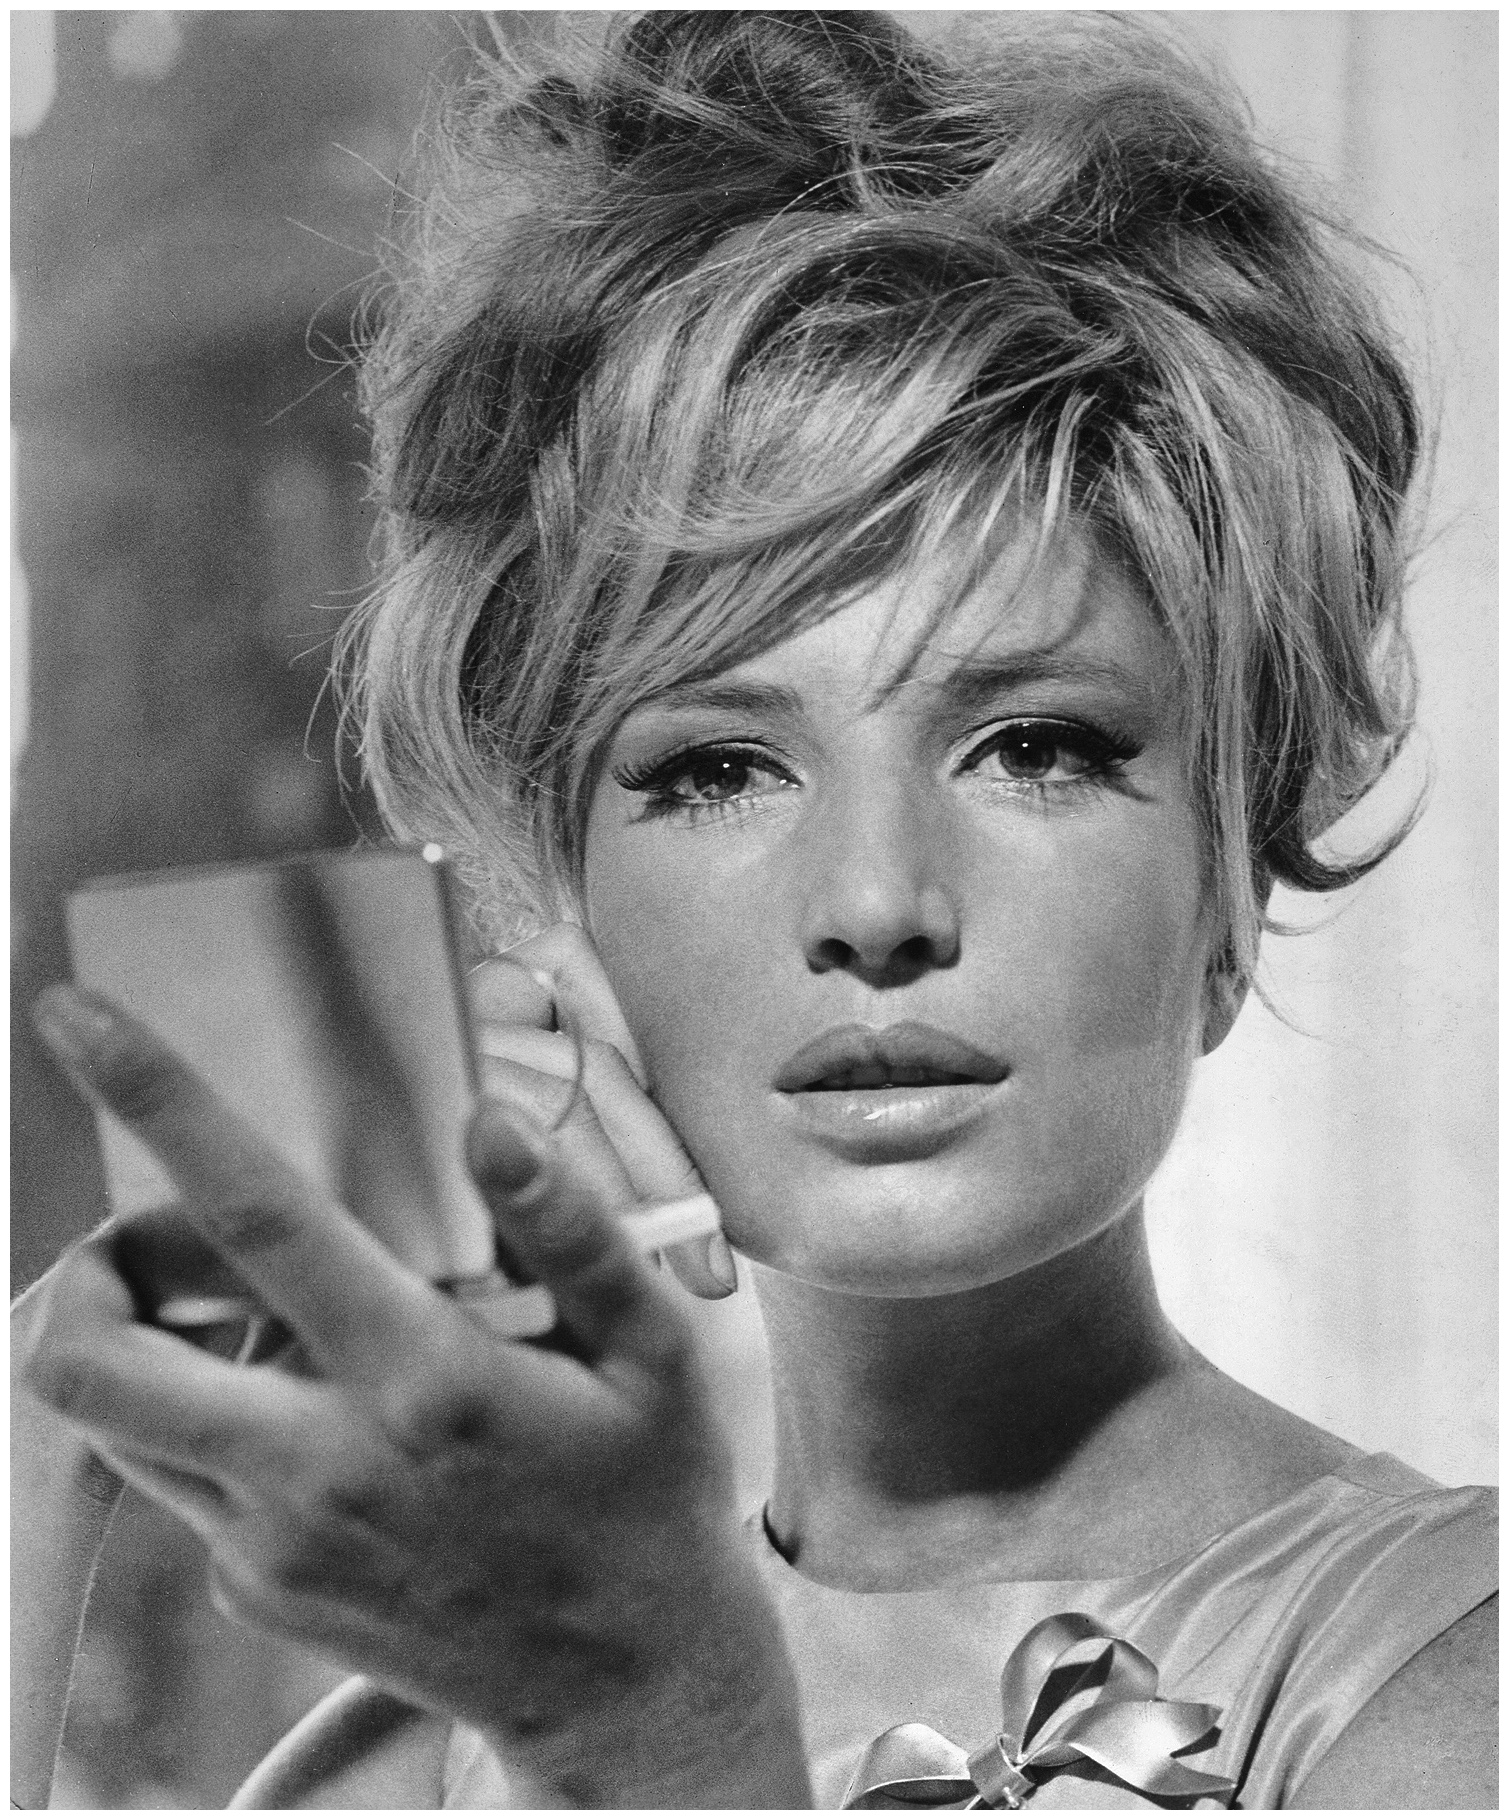 Monica Vitti looking at herself in the mirror in a scene from the film 'Modesty Blaise', 1966. Director Joseph Losey. 1966